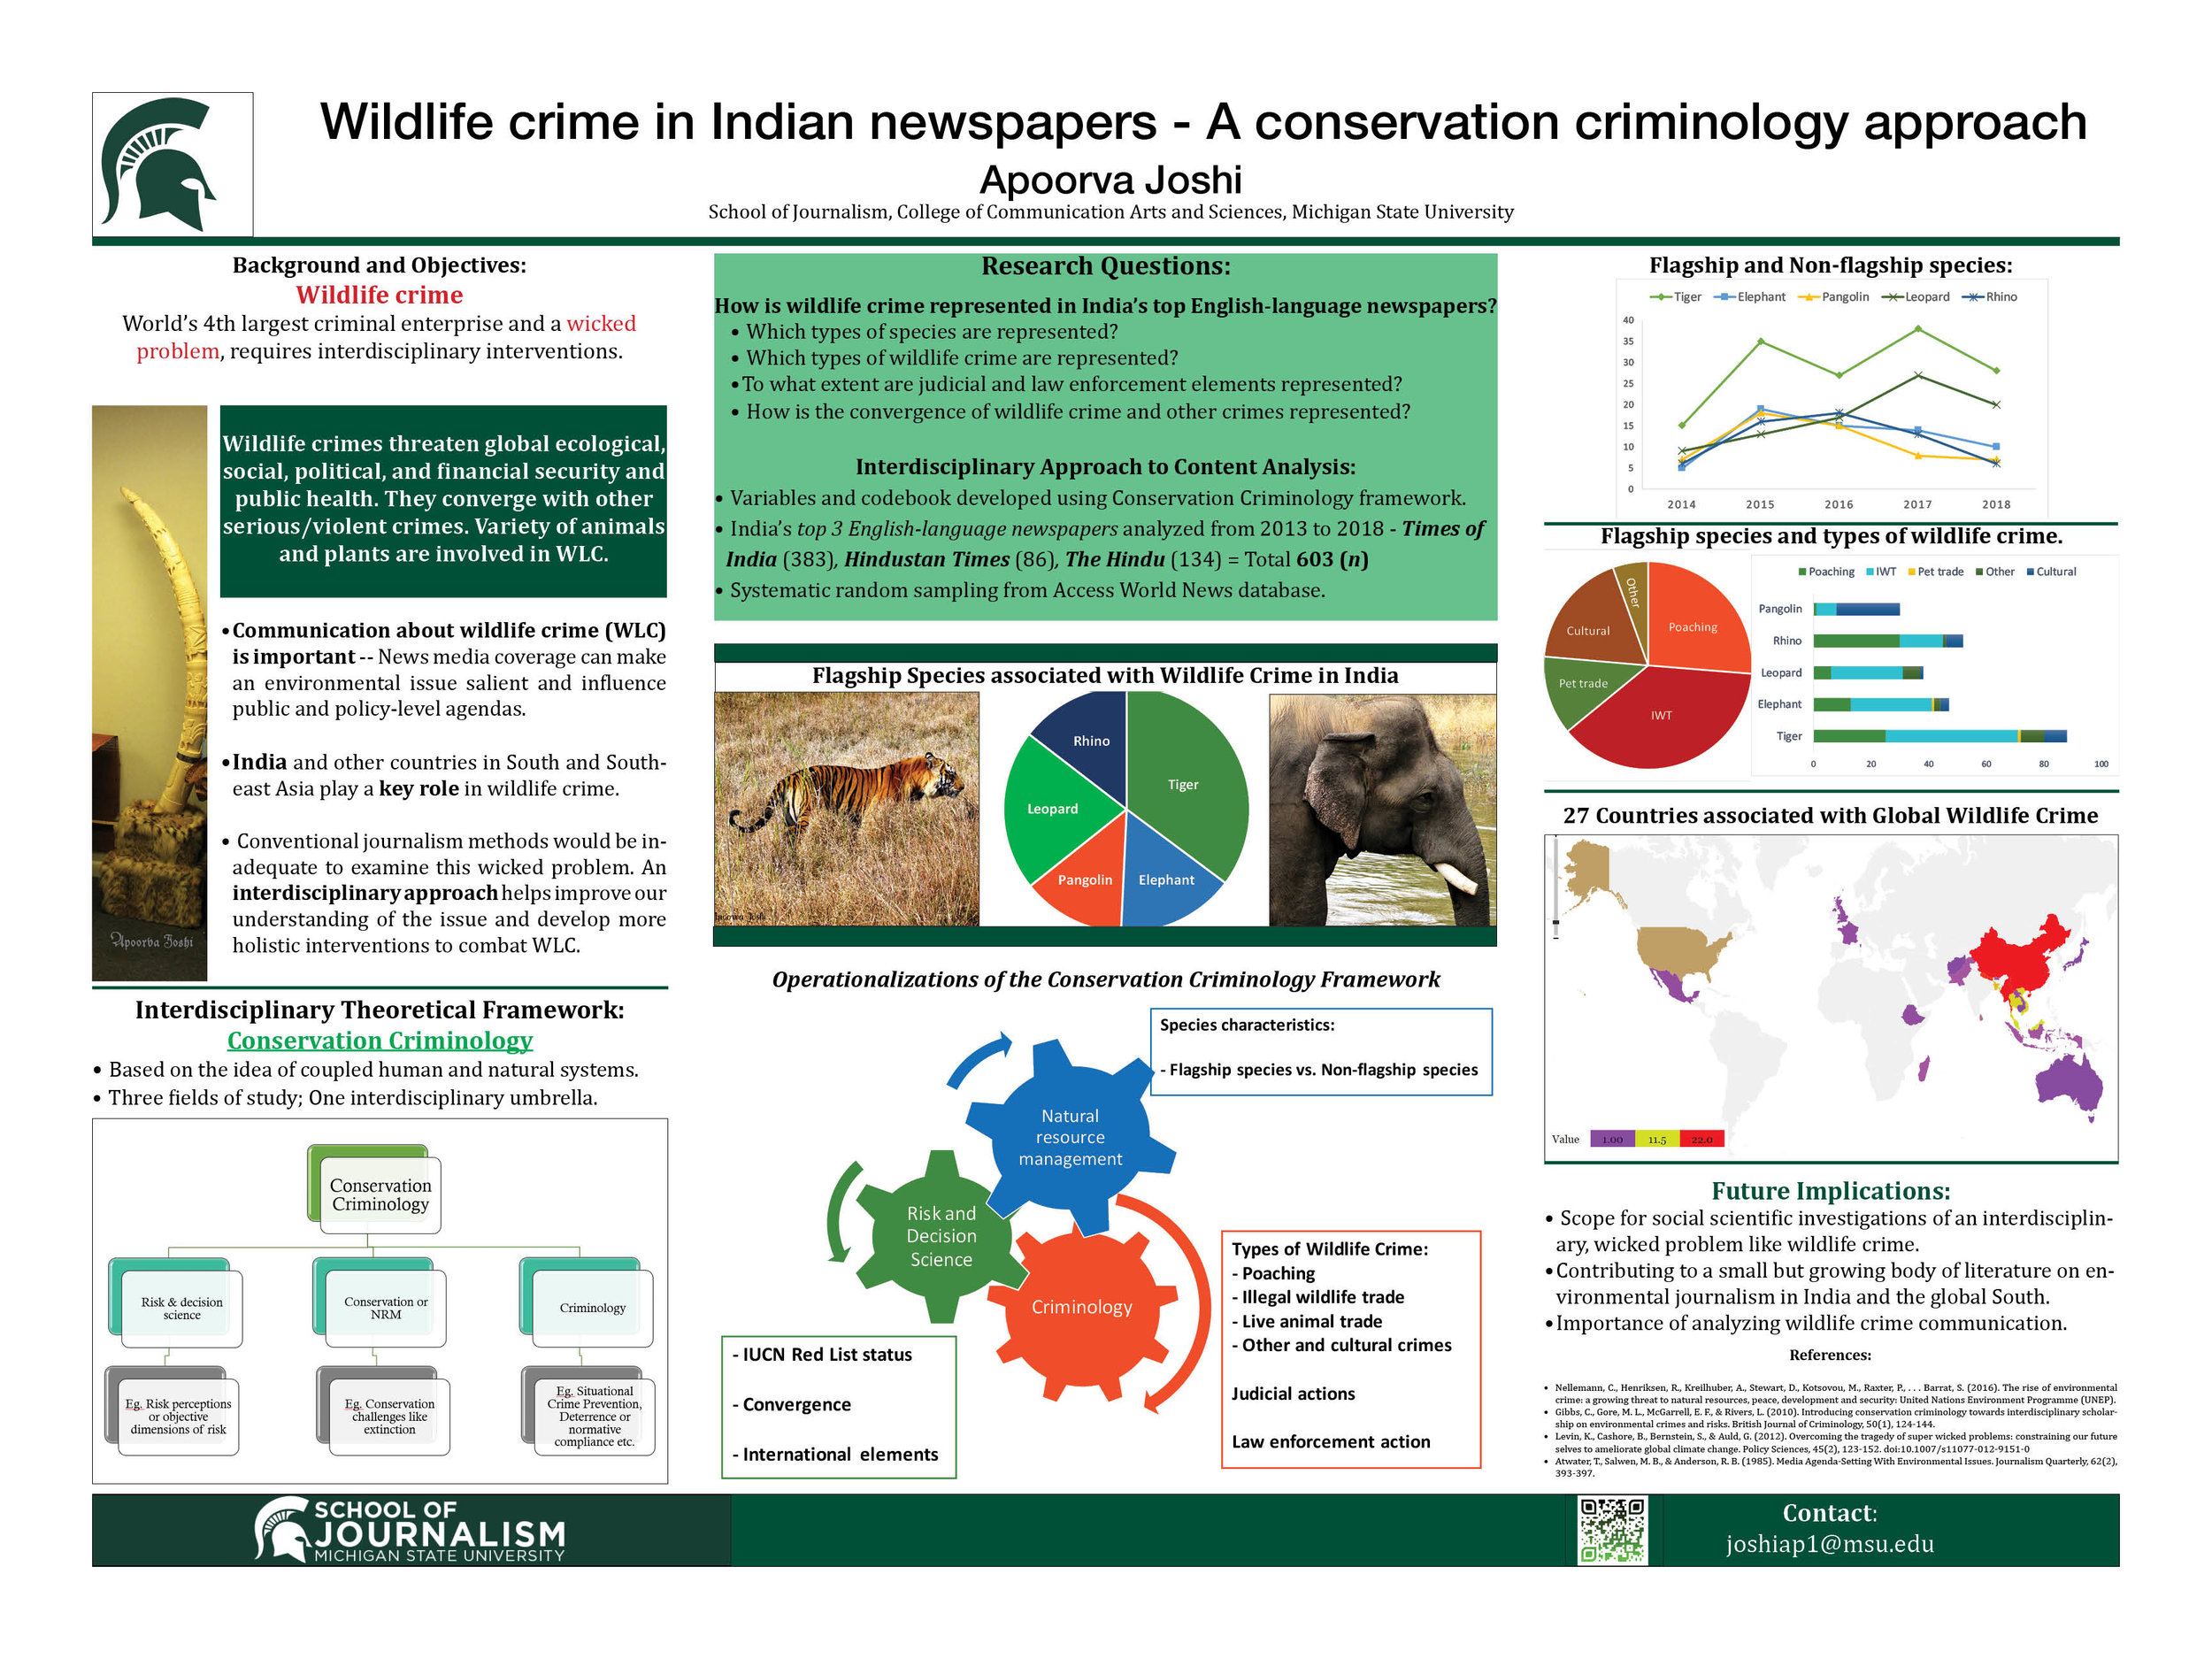 """""""Wildlife crime in Indian newspapers - An interdisciplinary conservation criminology approach""""  - Poster presented at the 2019 annual conference of the  International Communication Association  in Washington, D.C."""